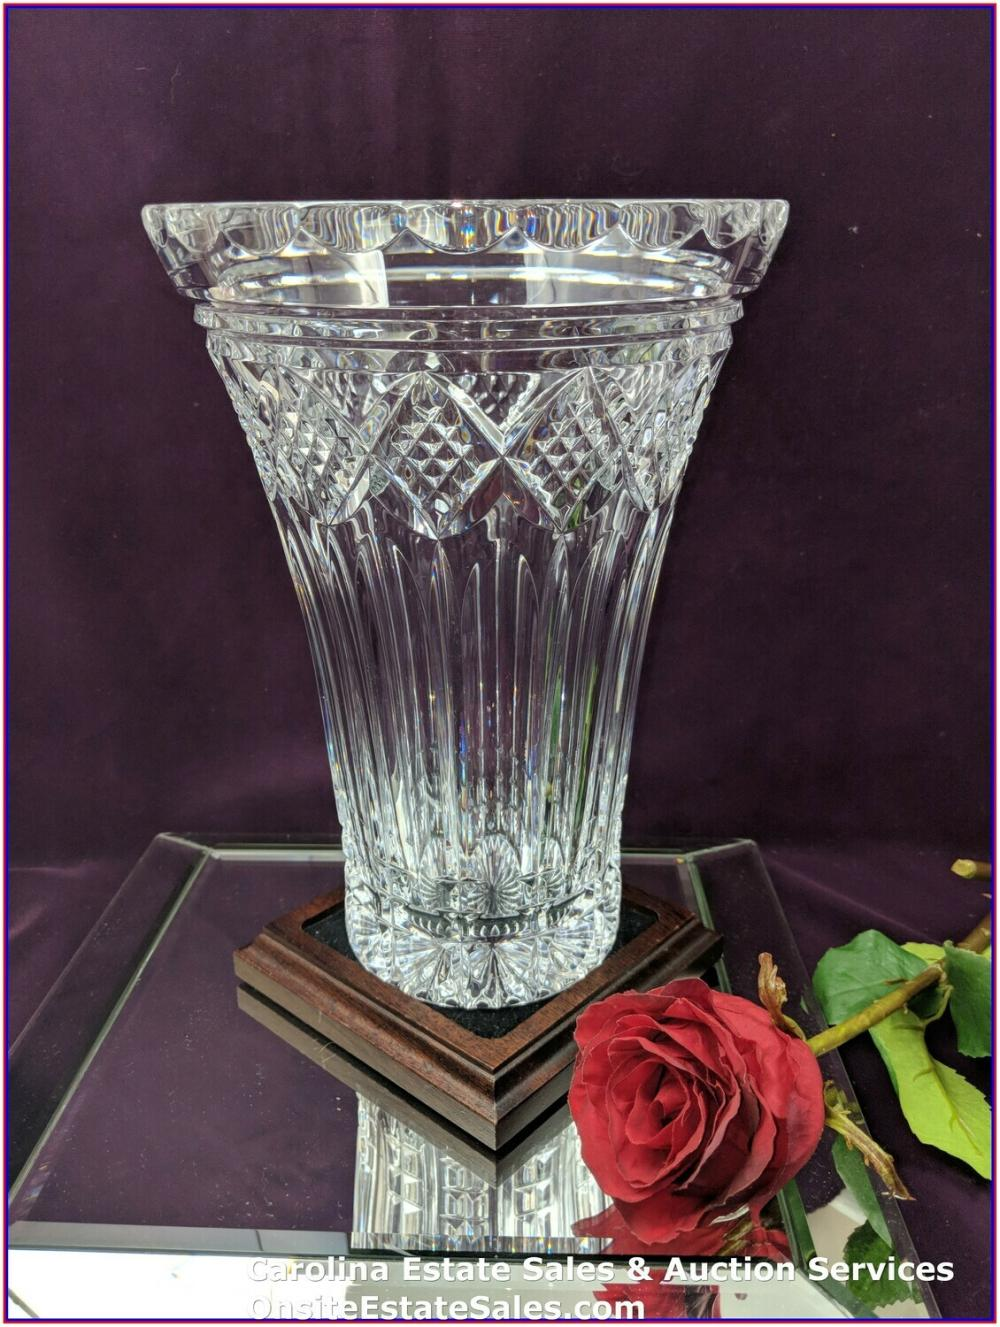 "WATERFORD CRYSTAL ST. PAULS TOWER 10"" BEAUTIFUL VASE SIGNED JIM O'LEARY"